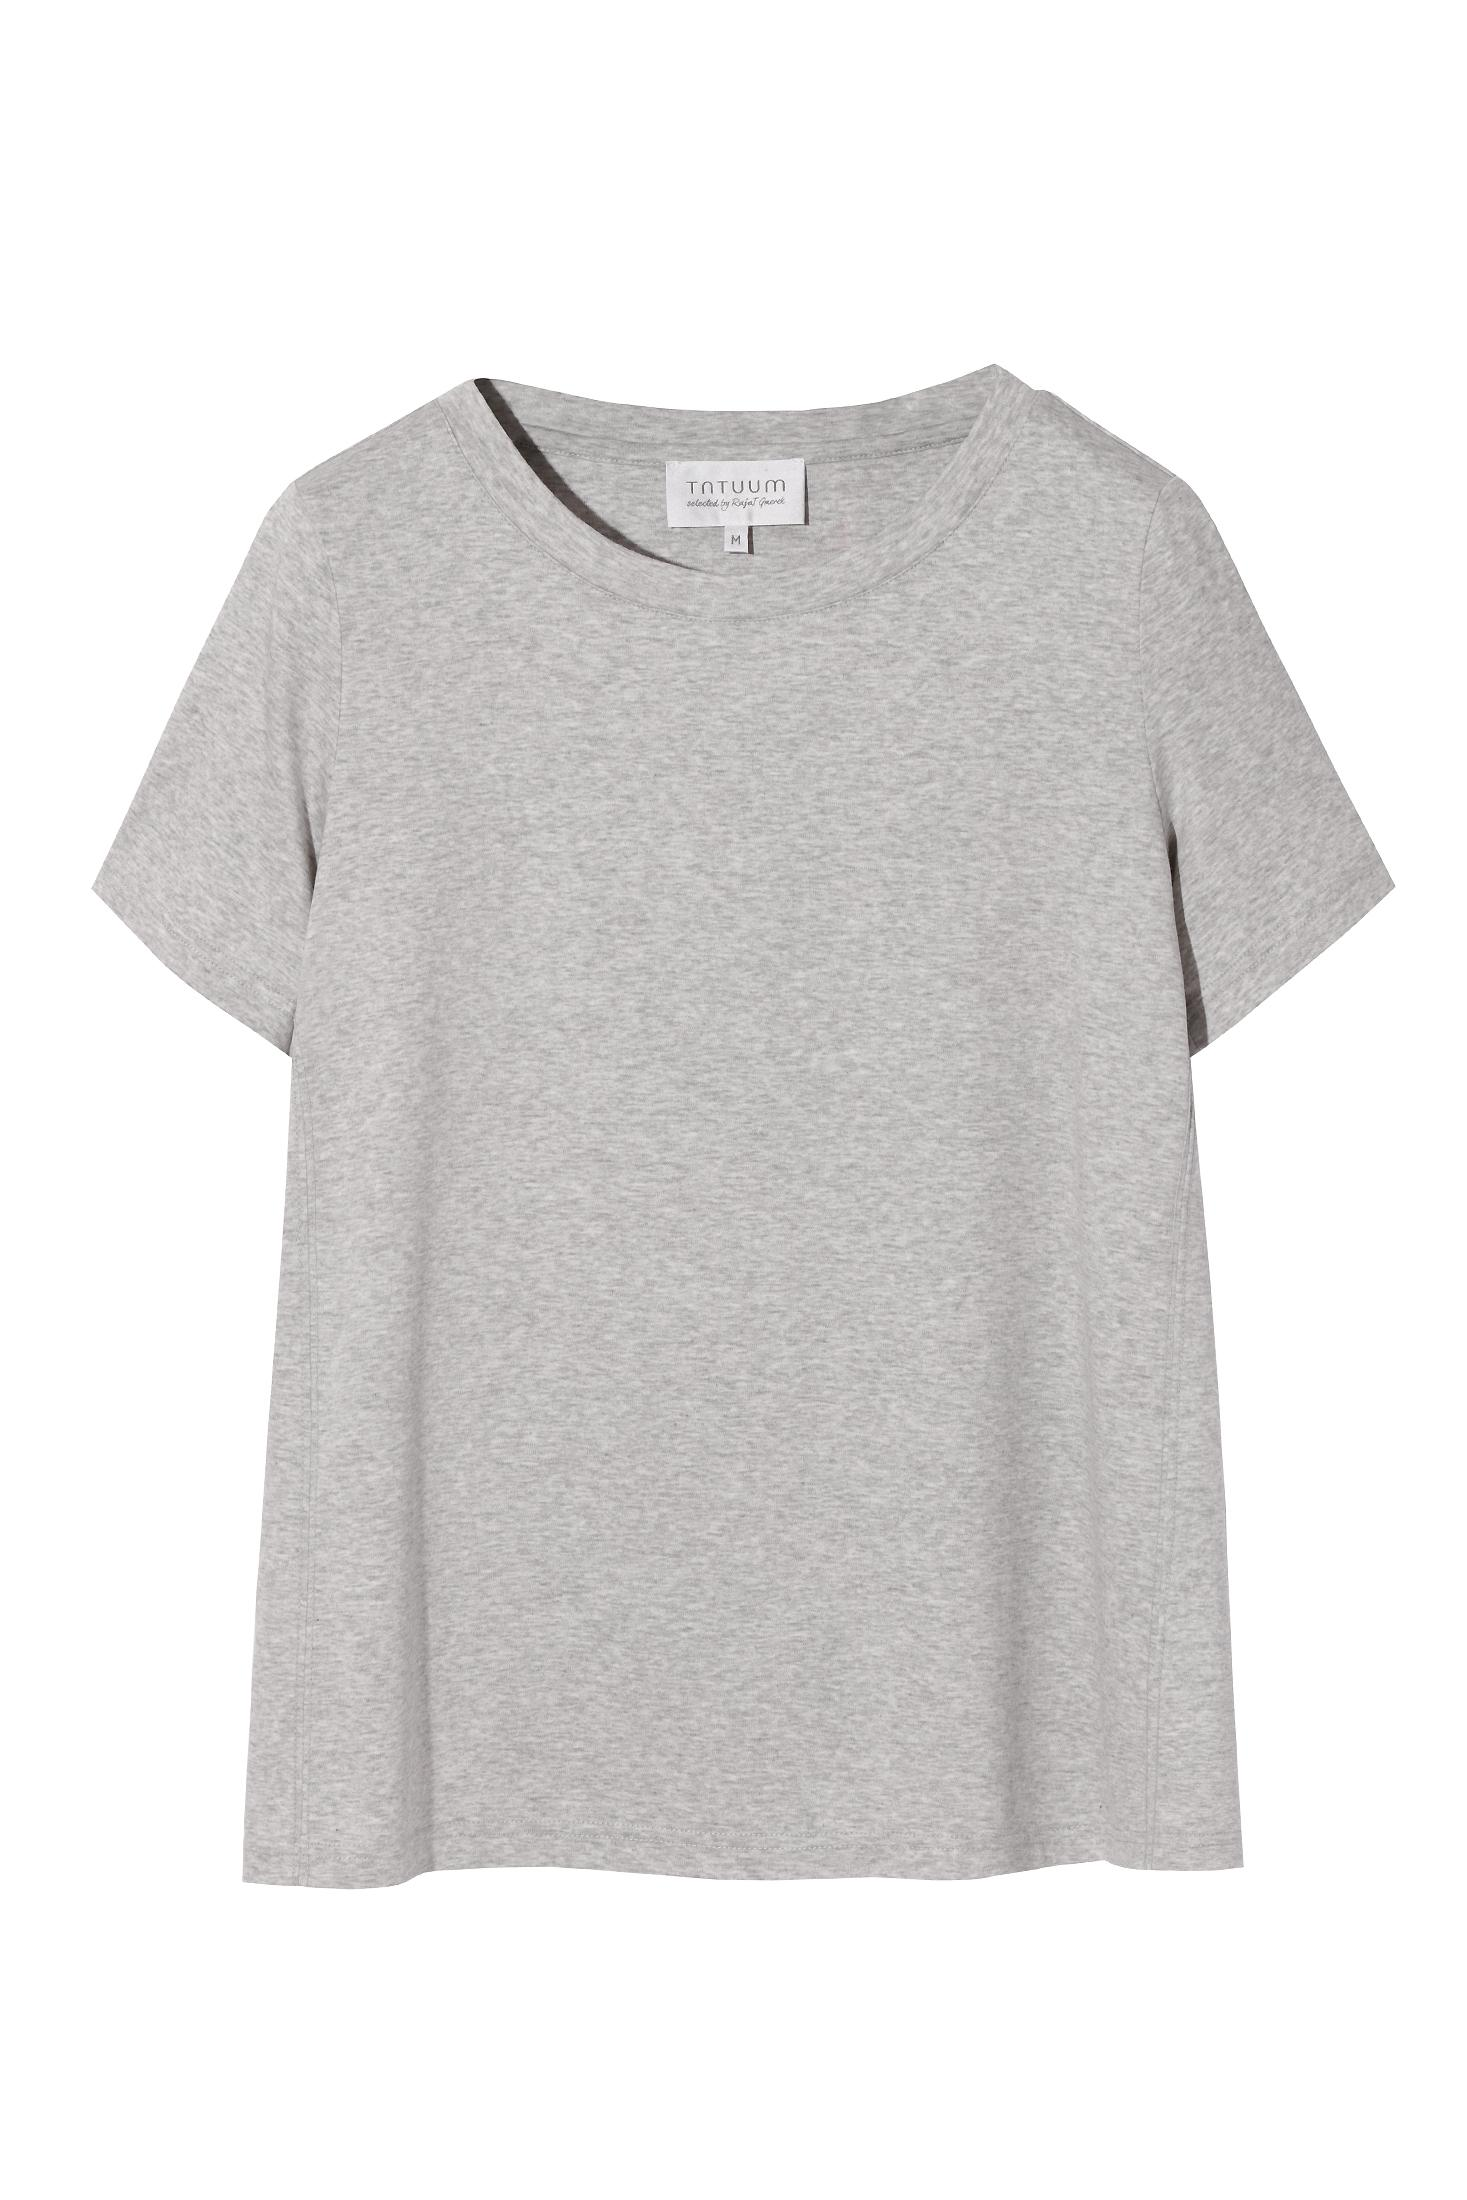 T-SHIRT WITH CLASSIC FORM - SELECTED LOTMIA 1